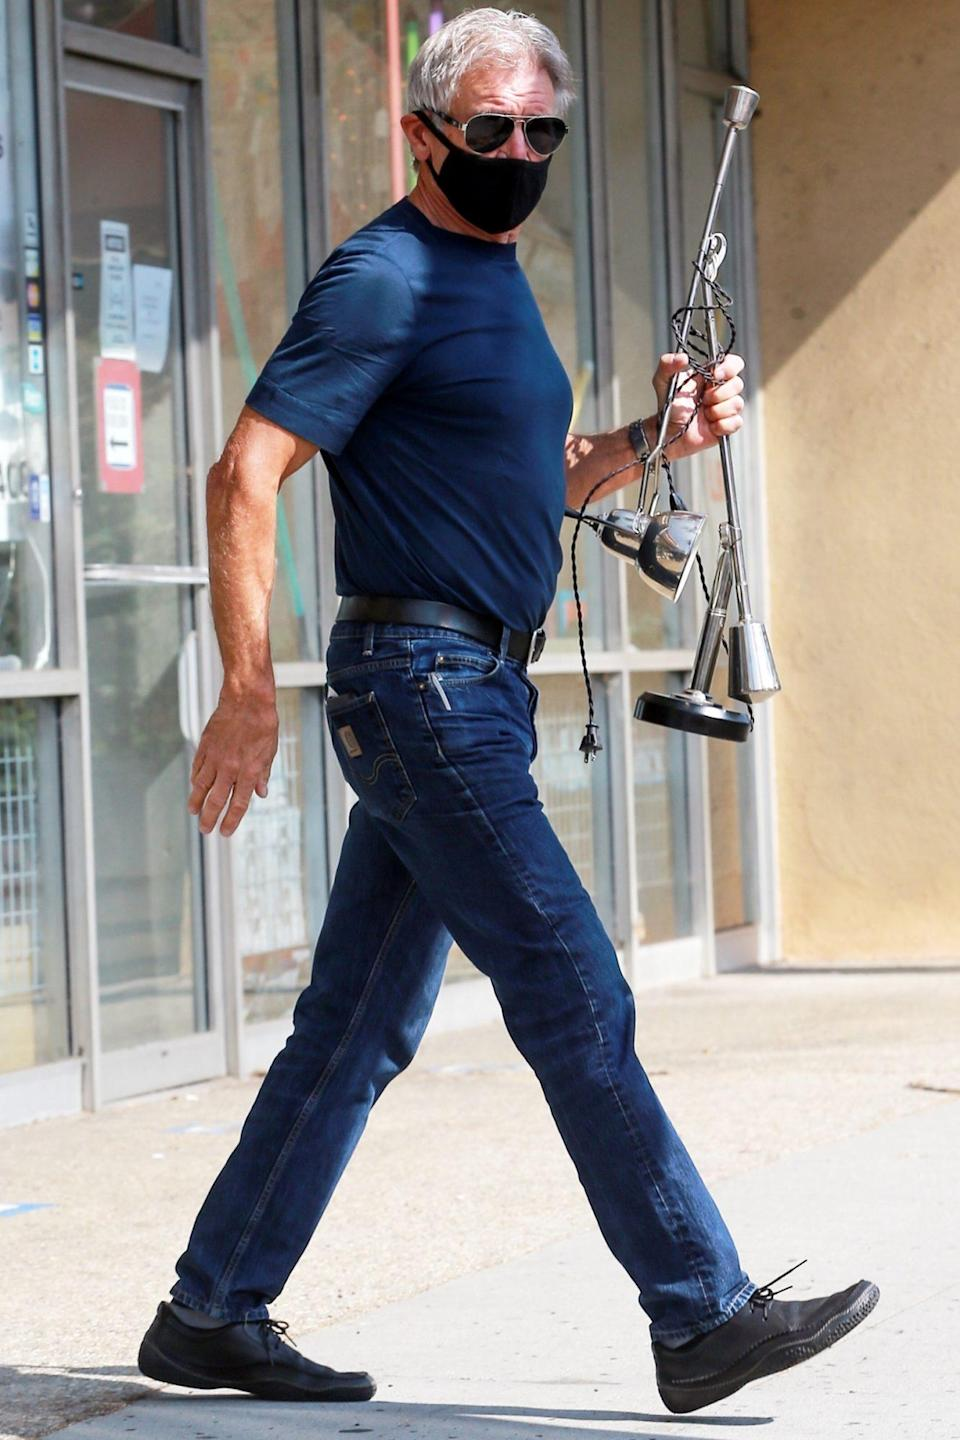 <p>Harrison Ford is seen bringing a broken desk lamp to a Light Bulbs Unlimited for repair in Santa Monica on Wednesday.</p>